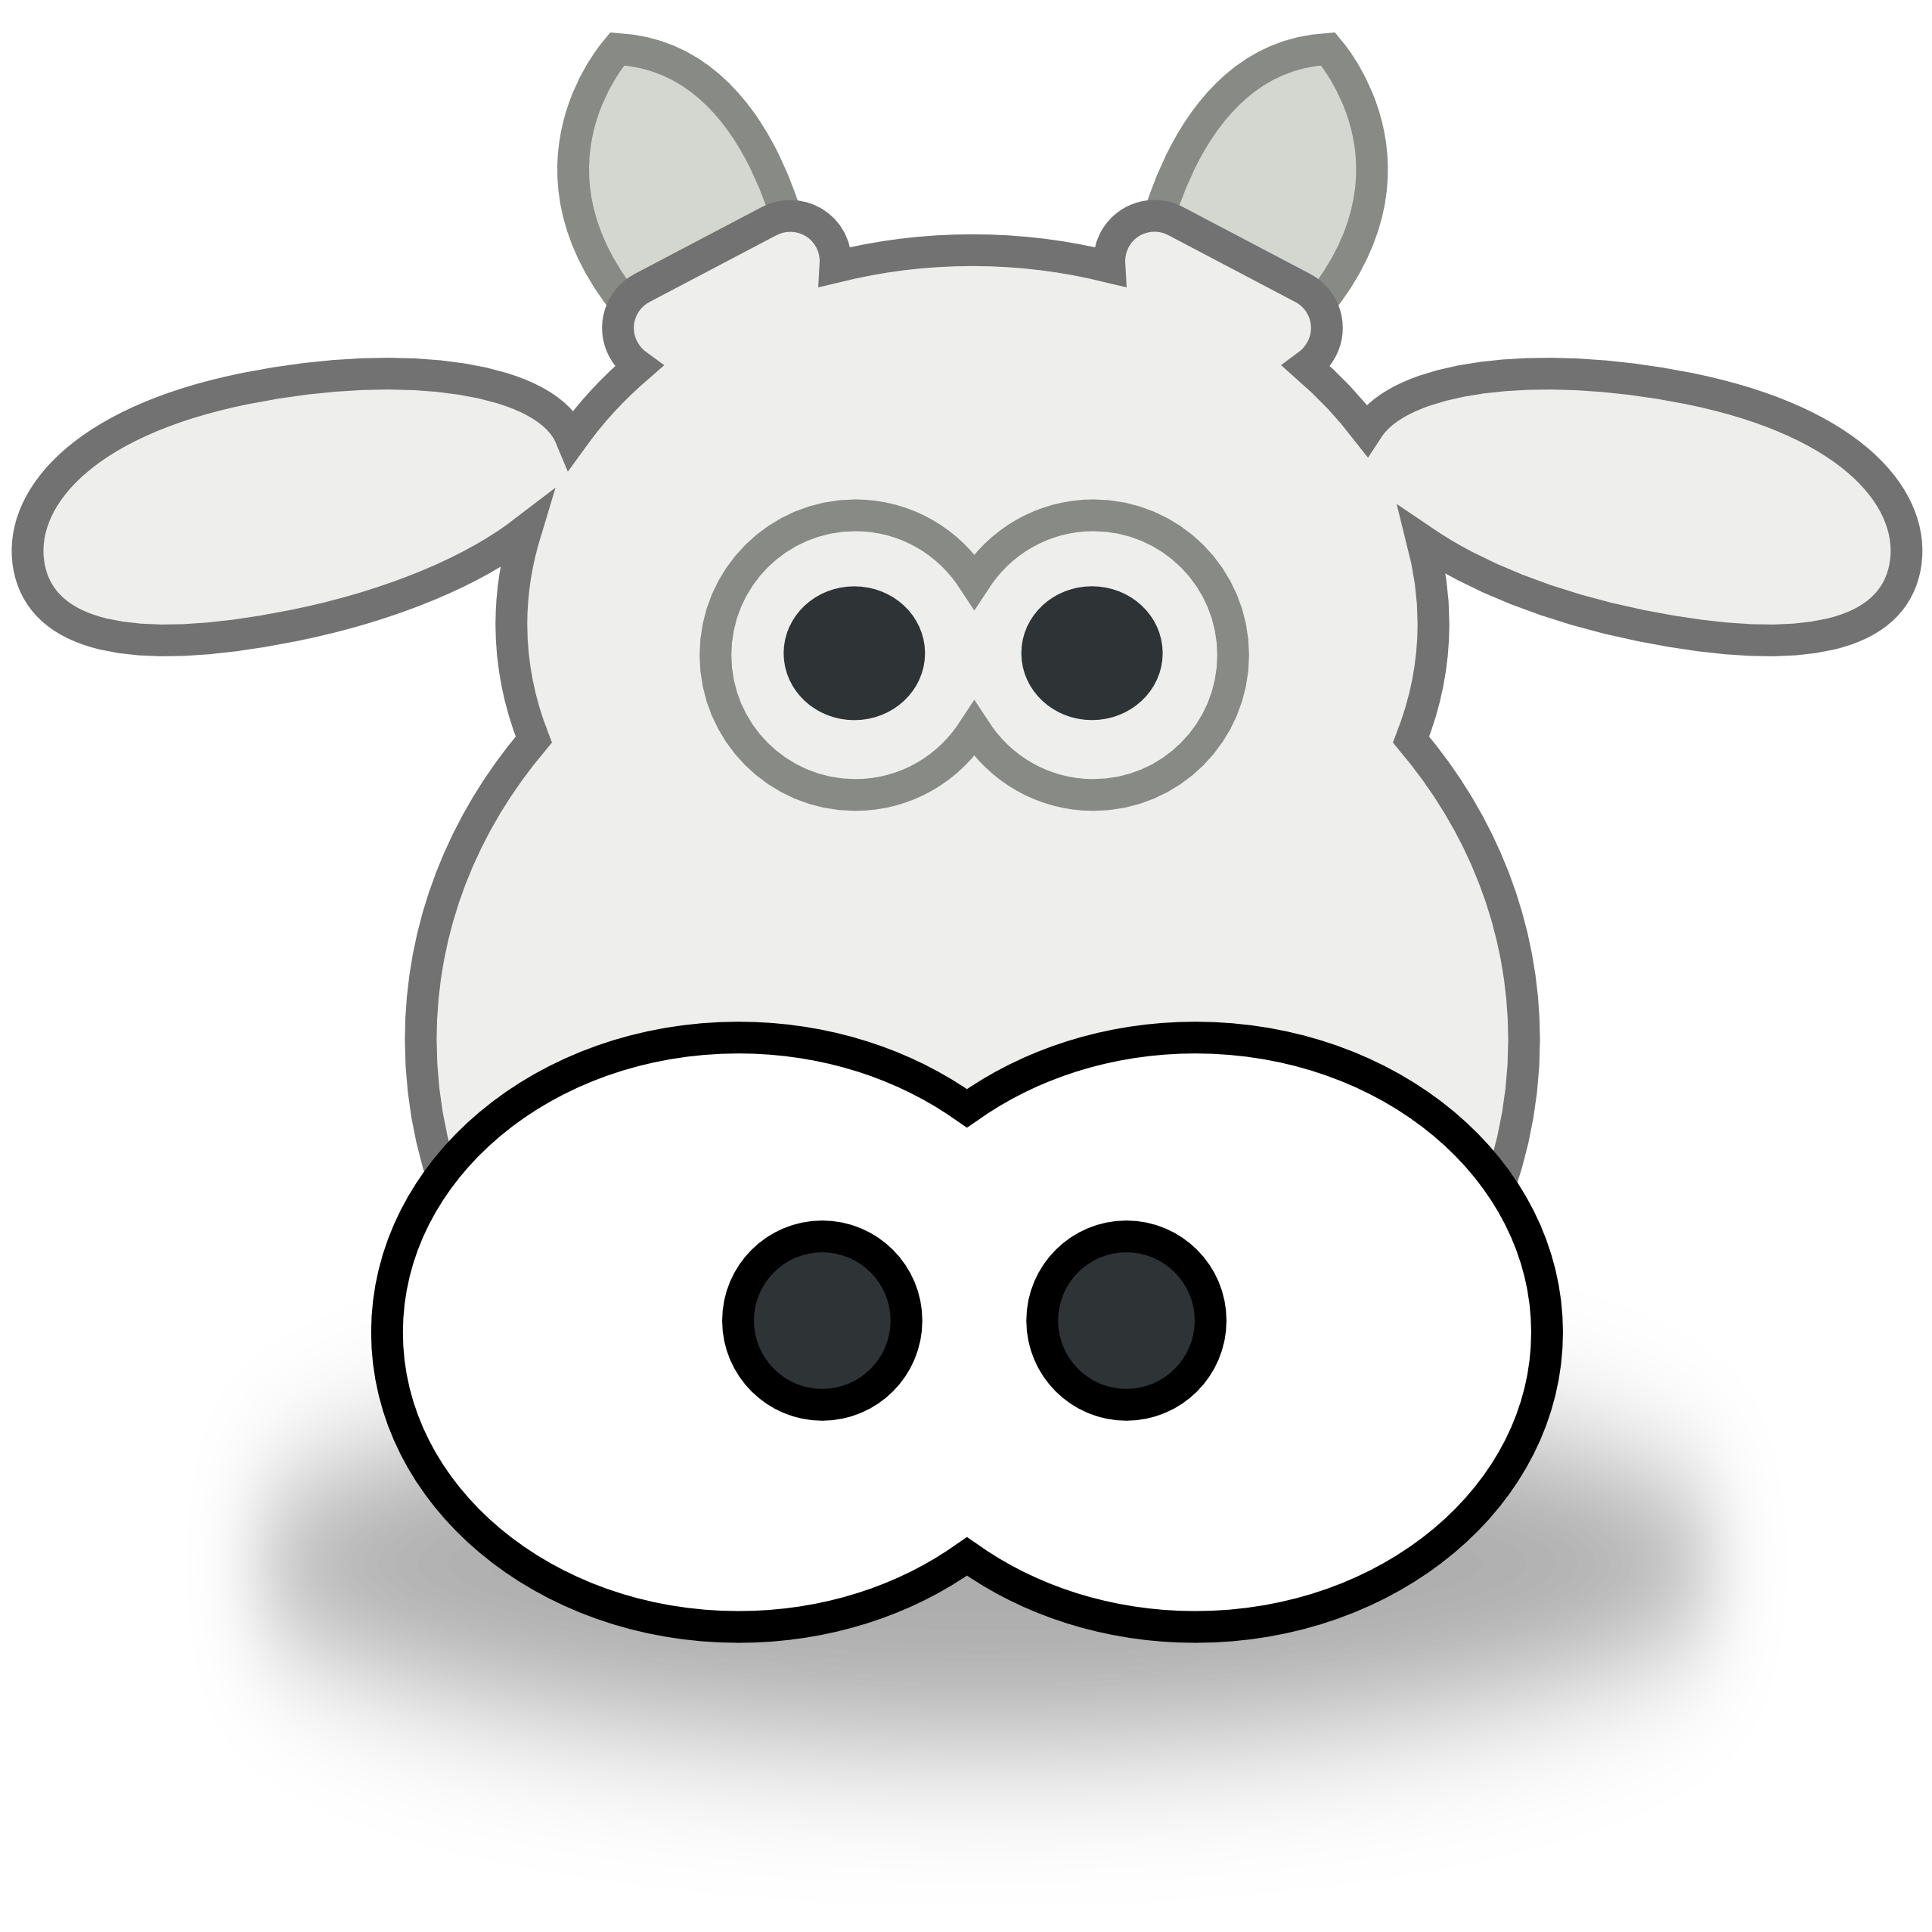 2555x2555 Cow Head Clipart Black And White Clipart Panda